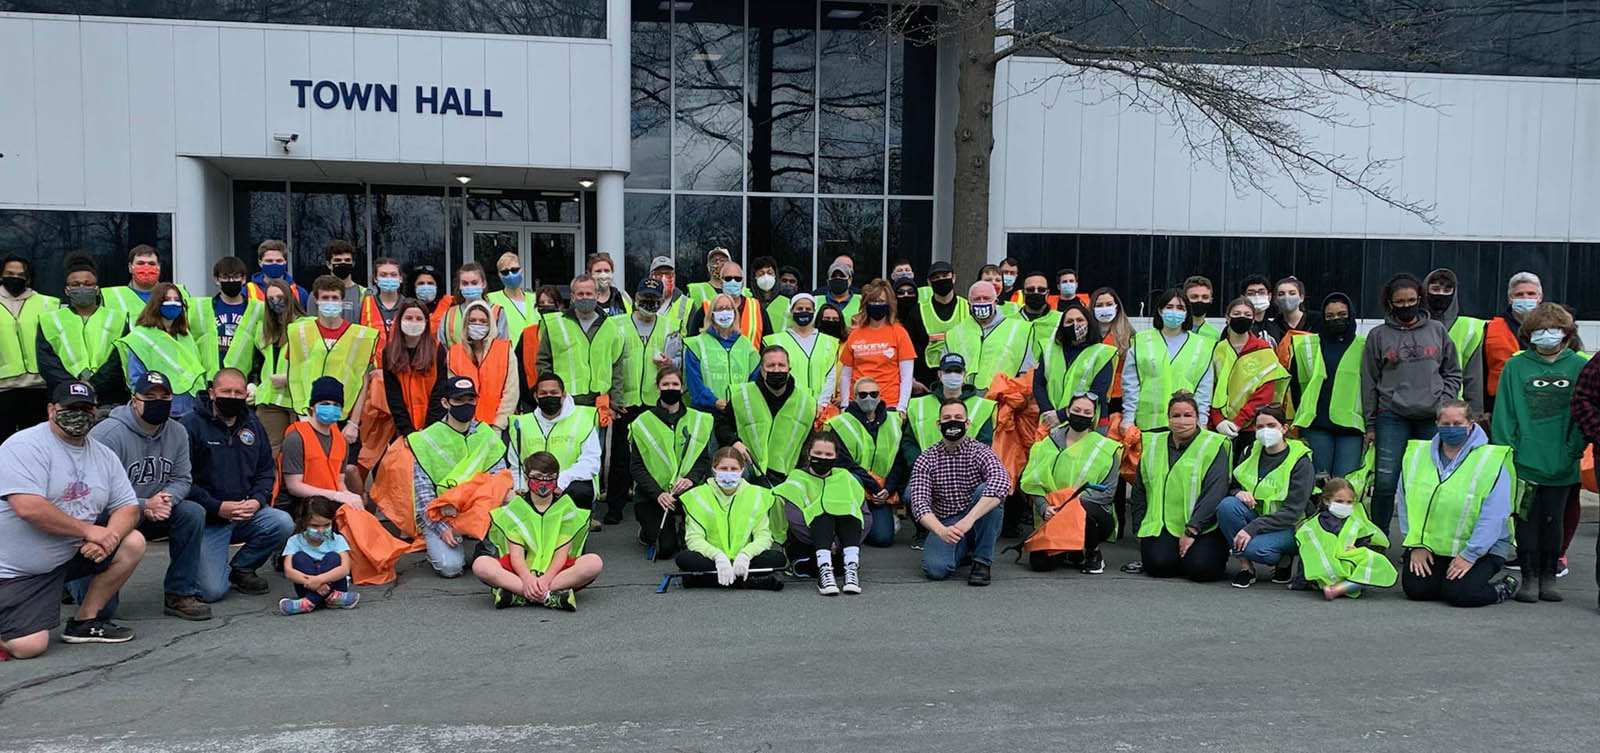 WALDEN SAVINGS BANK PARTICIPATES IN TOWN OF MONTGOMERY CLEAN SWEEP